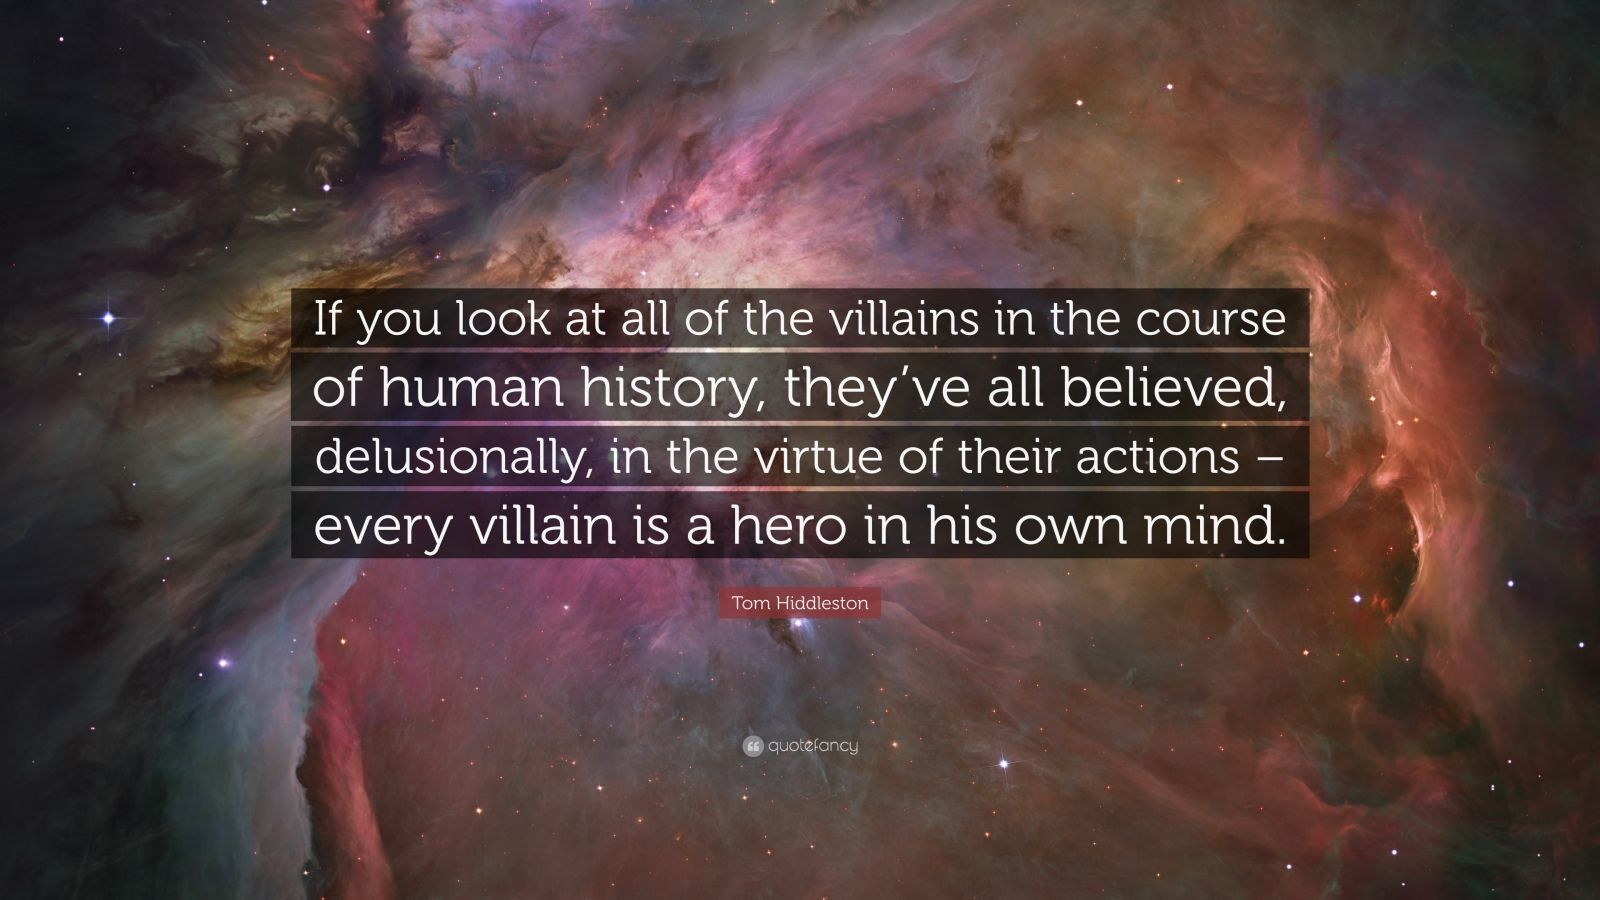 """Tom Hiddleston Quote: """"If you look at all of the villains in the course of human history, they've all believed, delusionally, in the virtue of their actions – every villain is a hero in his own mind."""""""